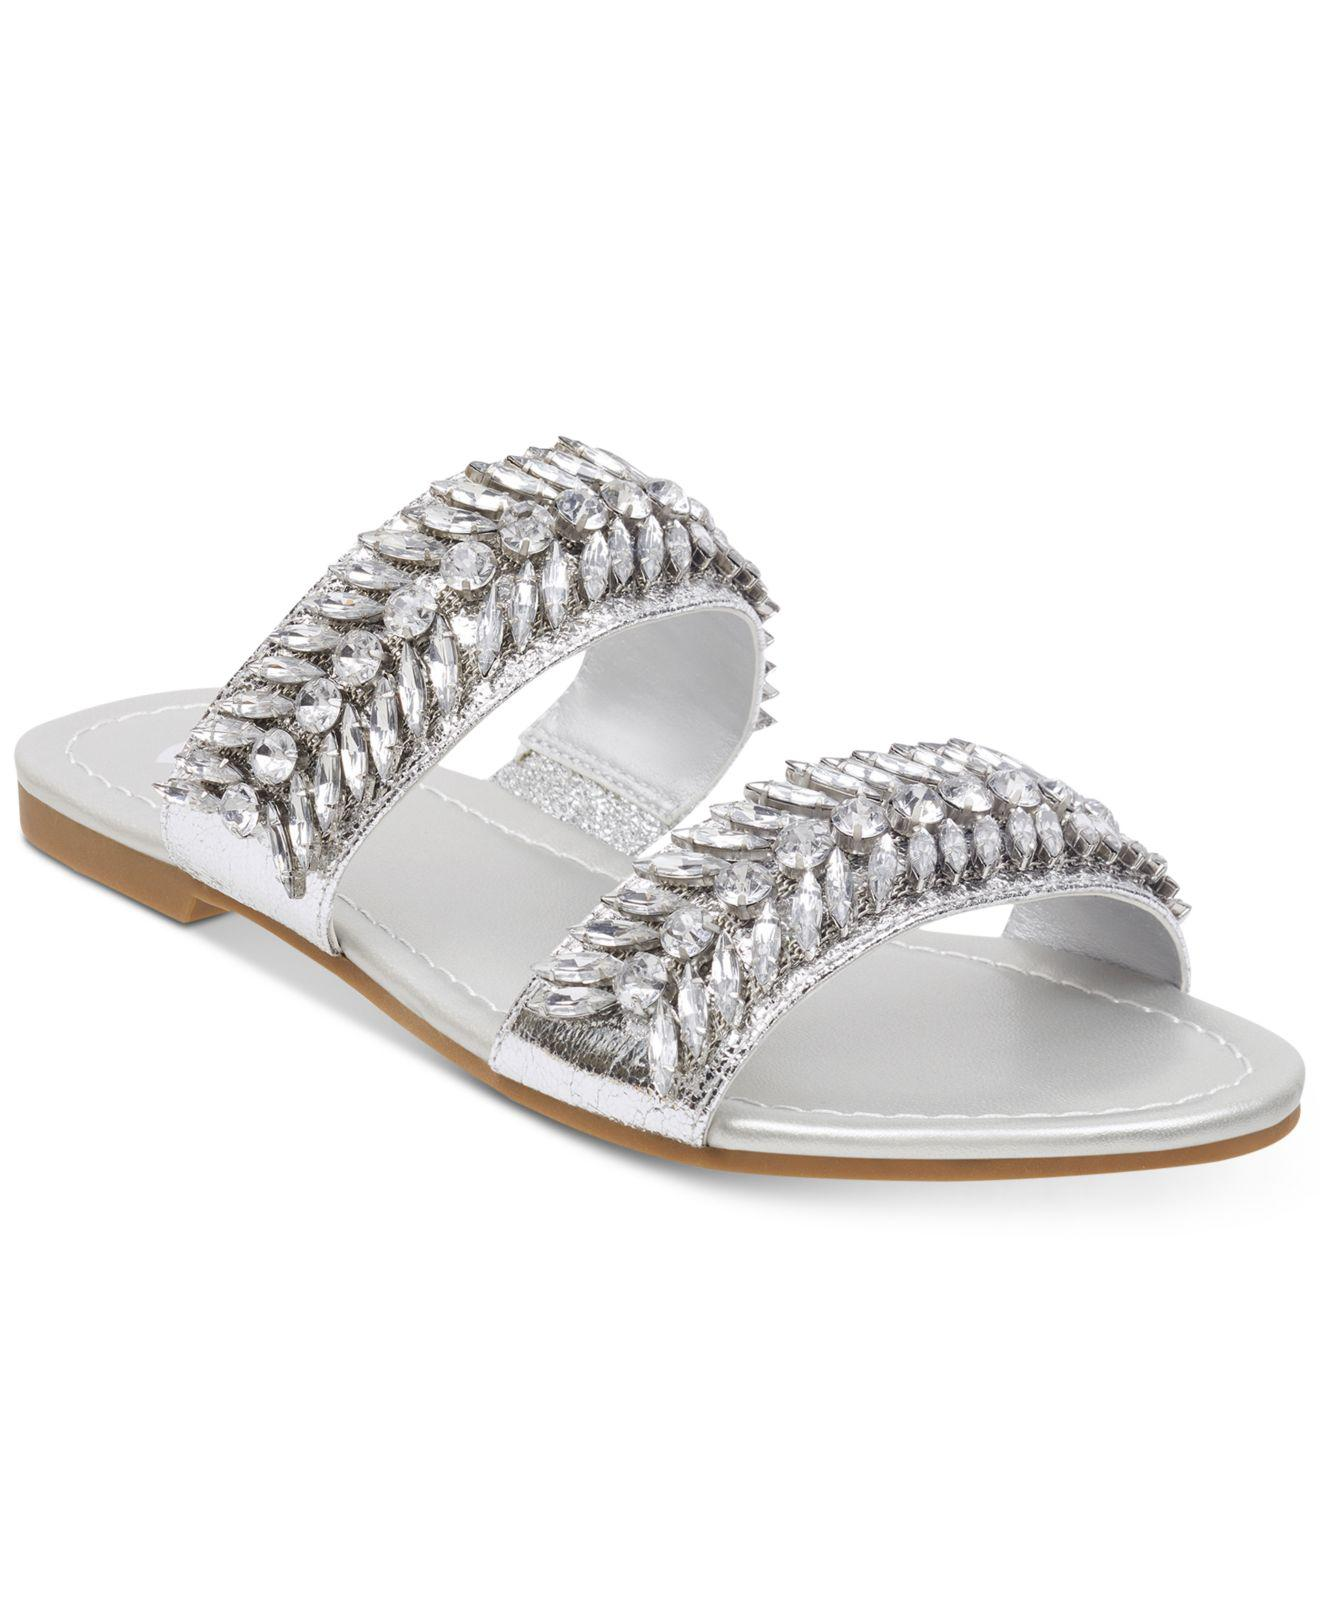 G Guess By Metallic Hiw2yed9 Flat Hd29ewybei Sandals Lyst Luxeen In f7y6IYgvb